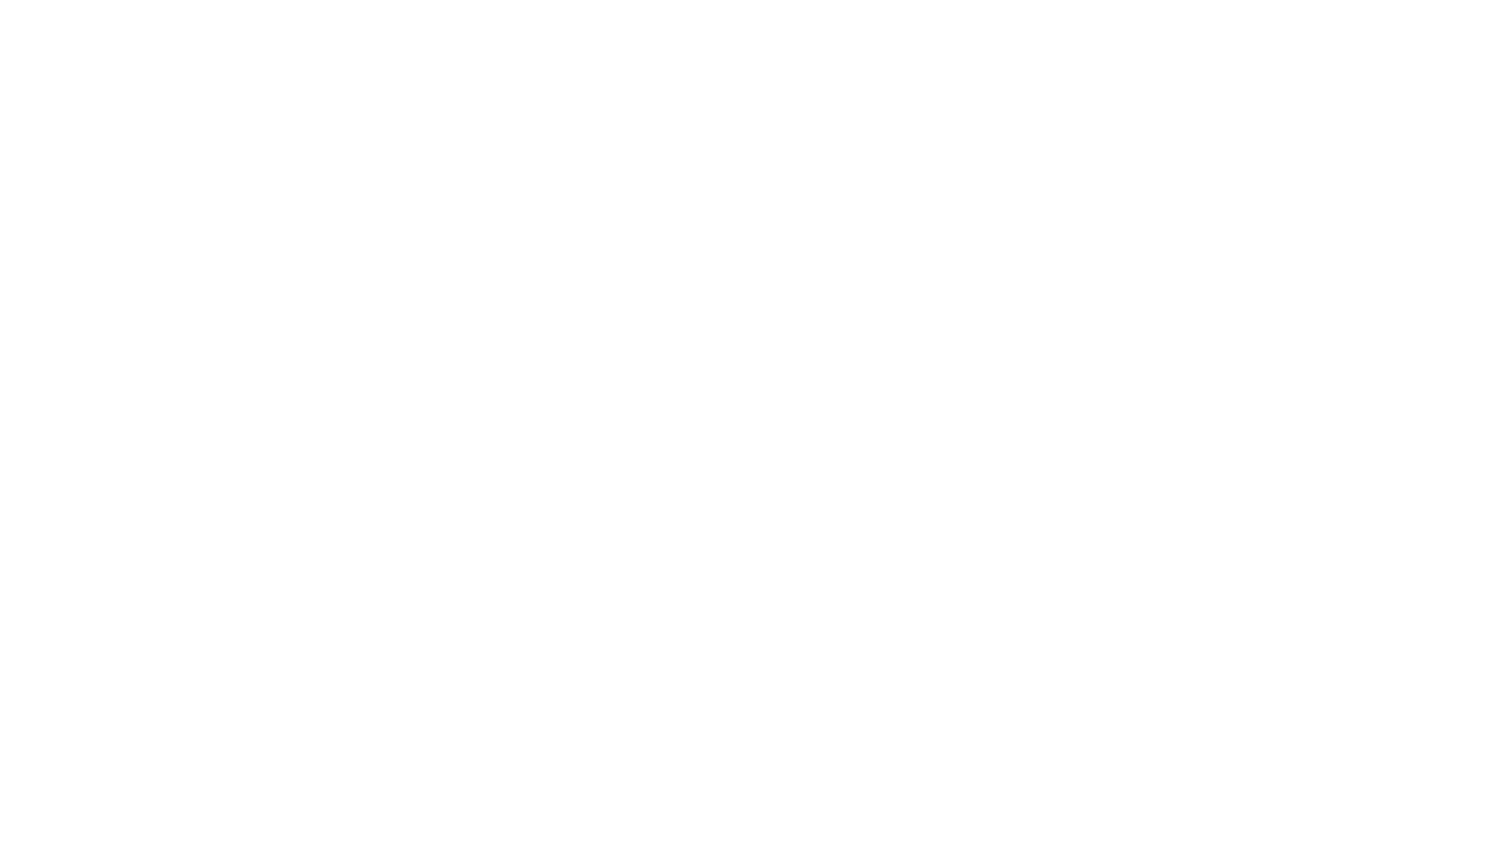 EPIC LLAMA - weekend adventures to secret destinations!